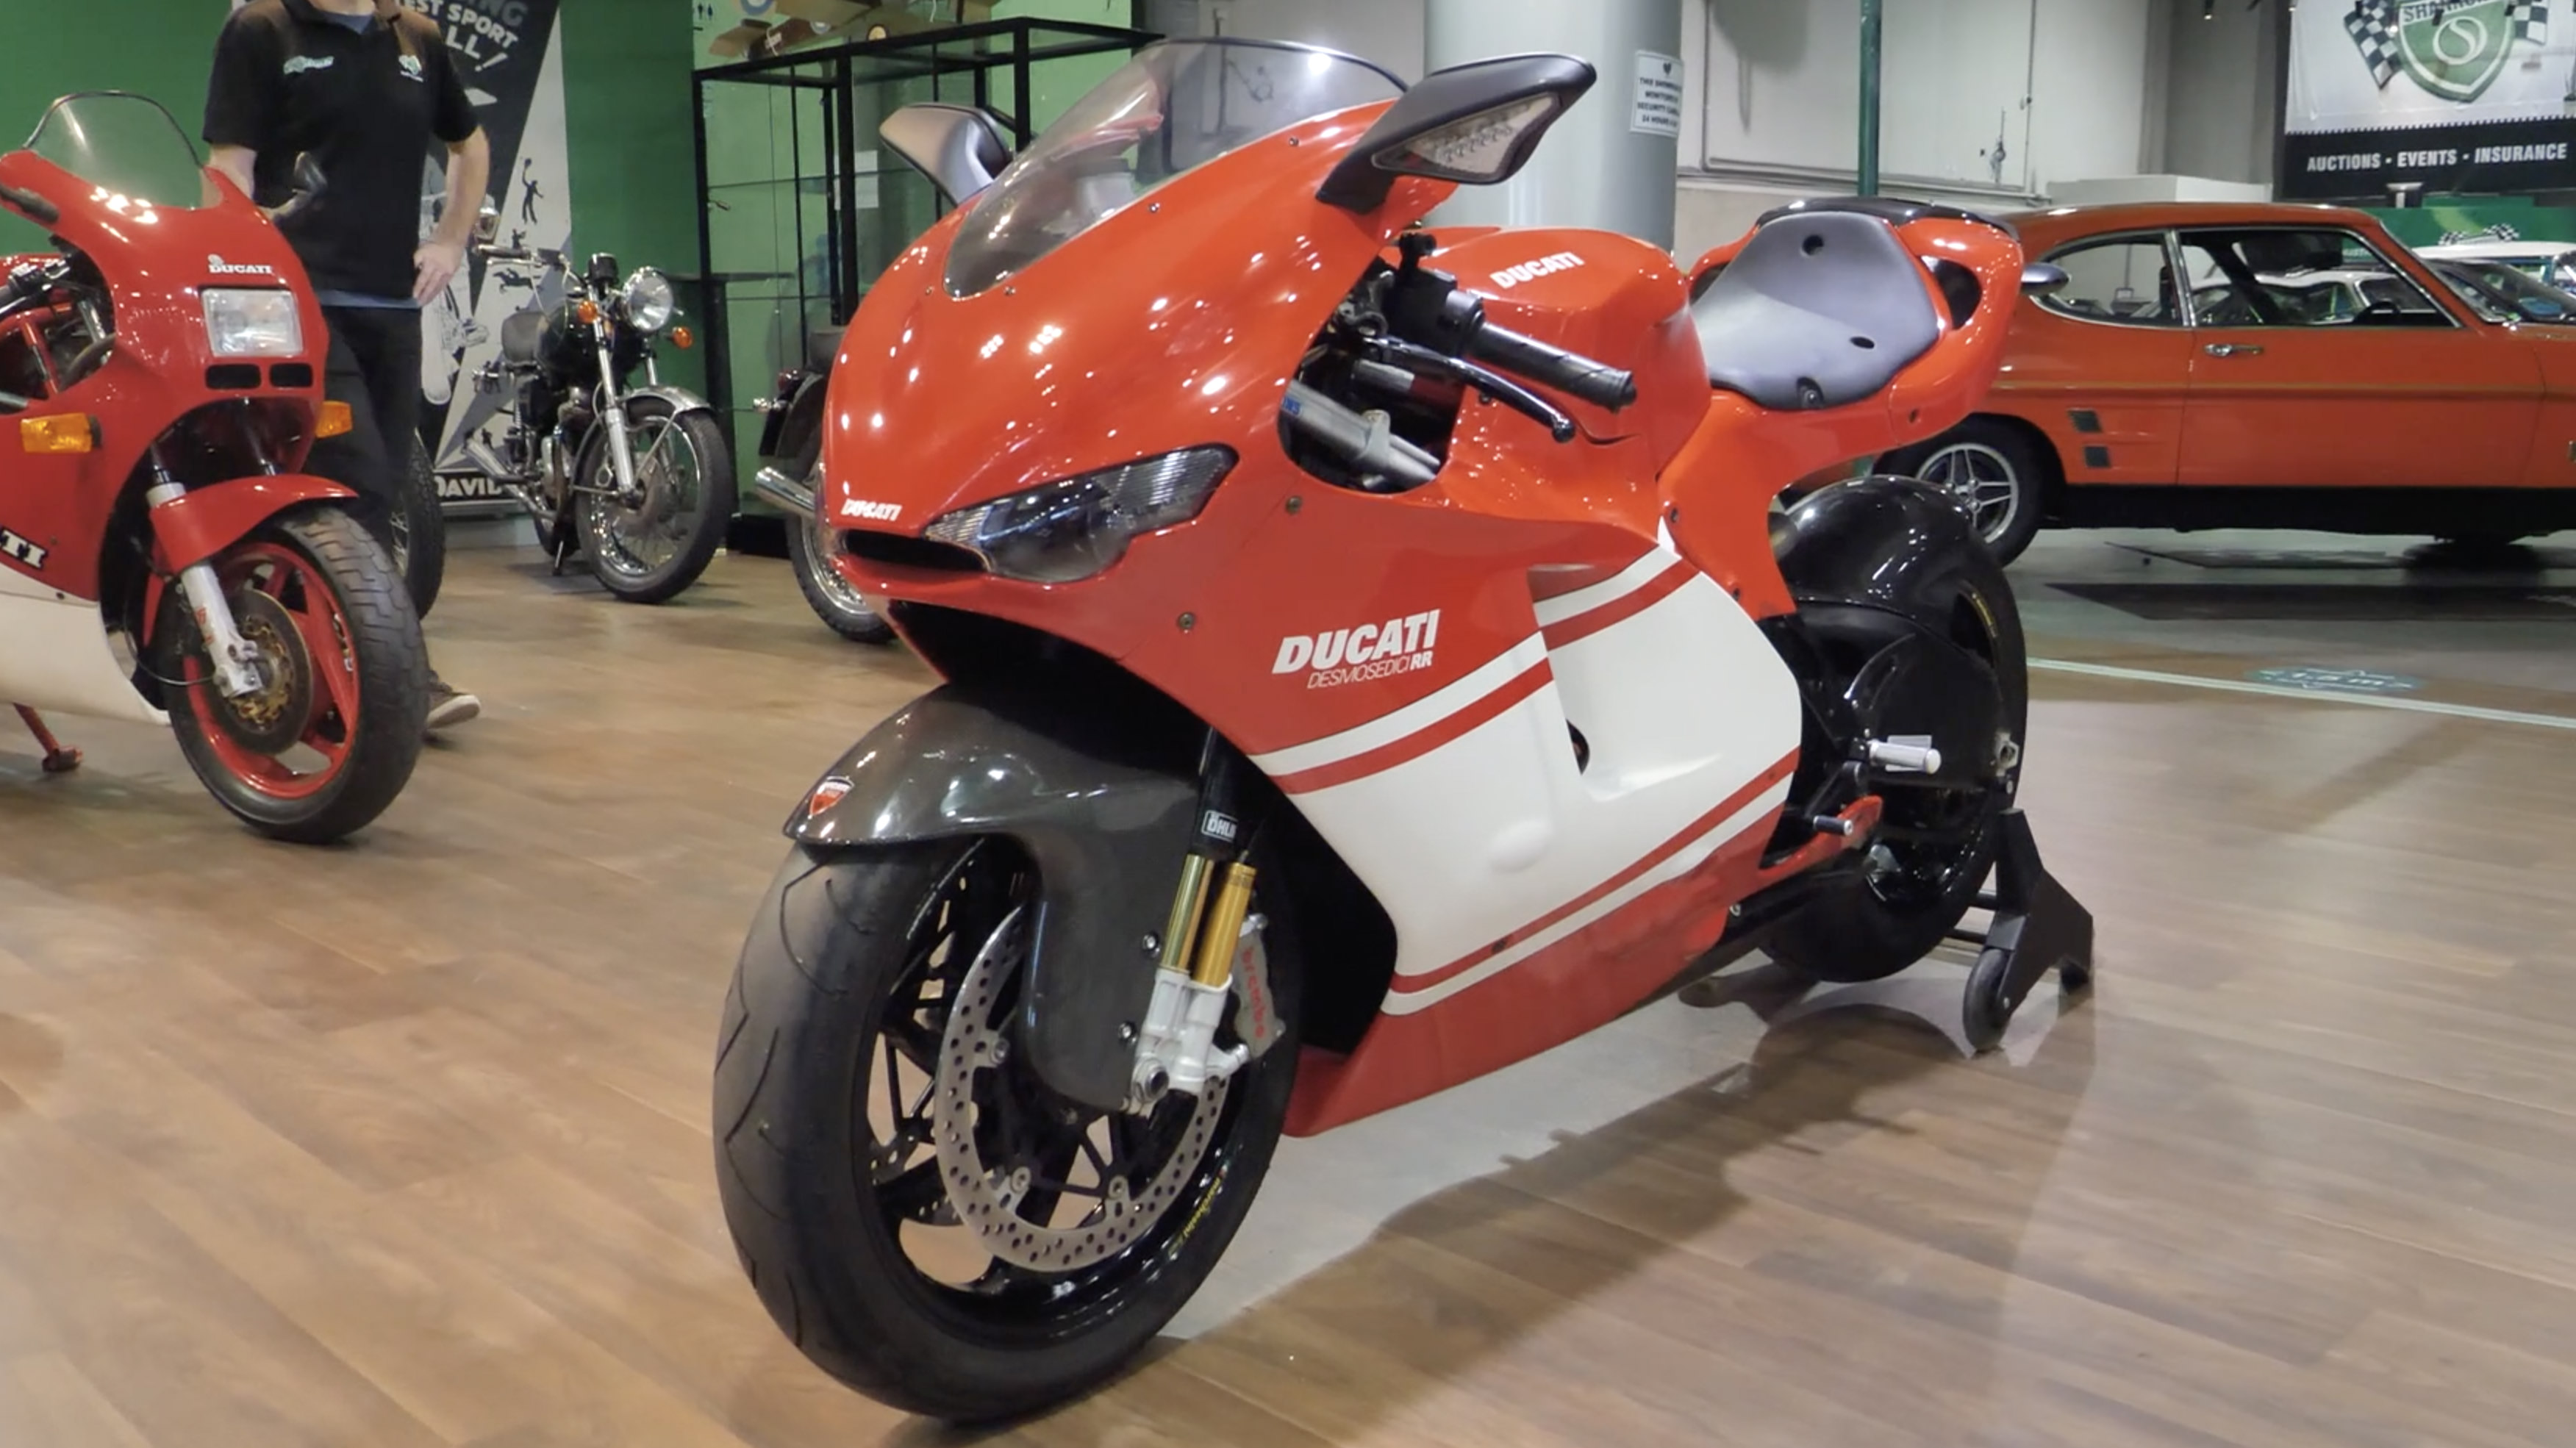 2008 Ducati Desmosedici RR Motorcycle - 2020 Shannons Spring Timed Online Auction